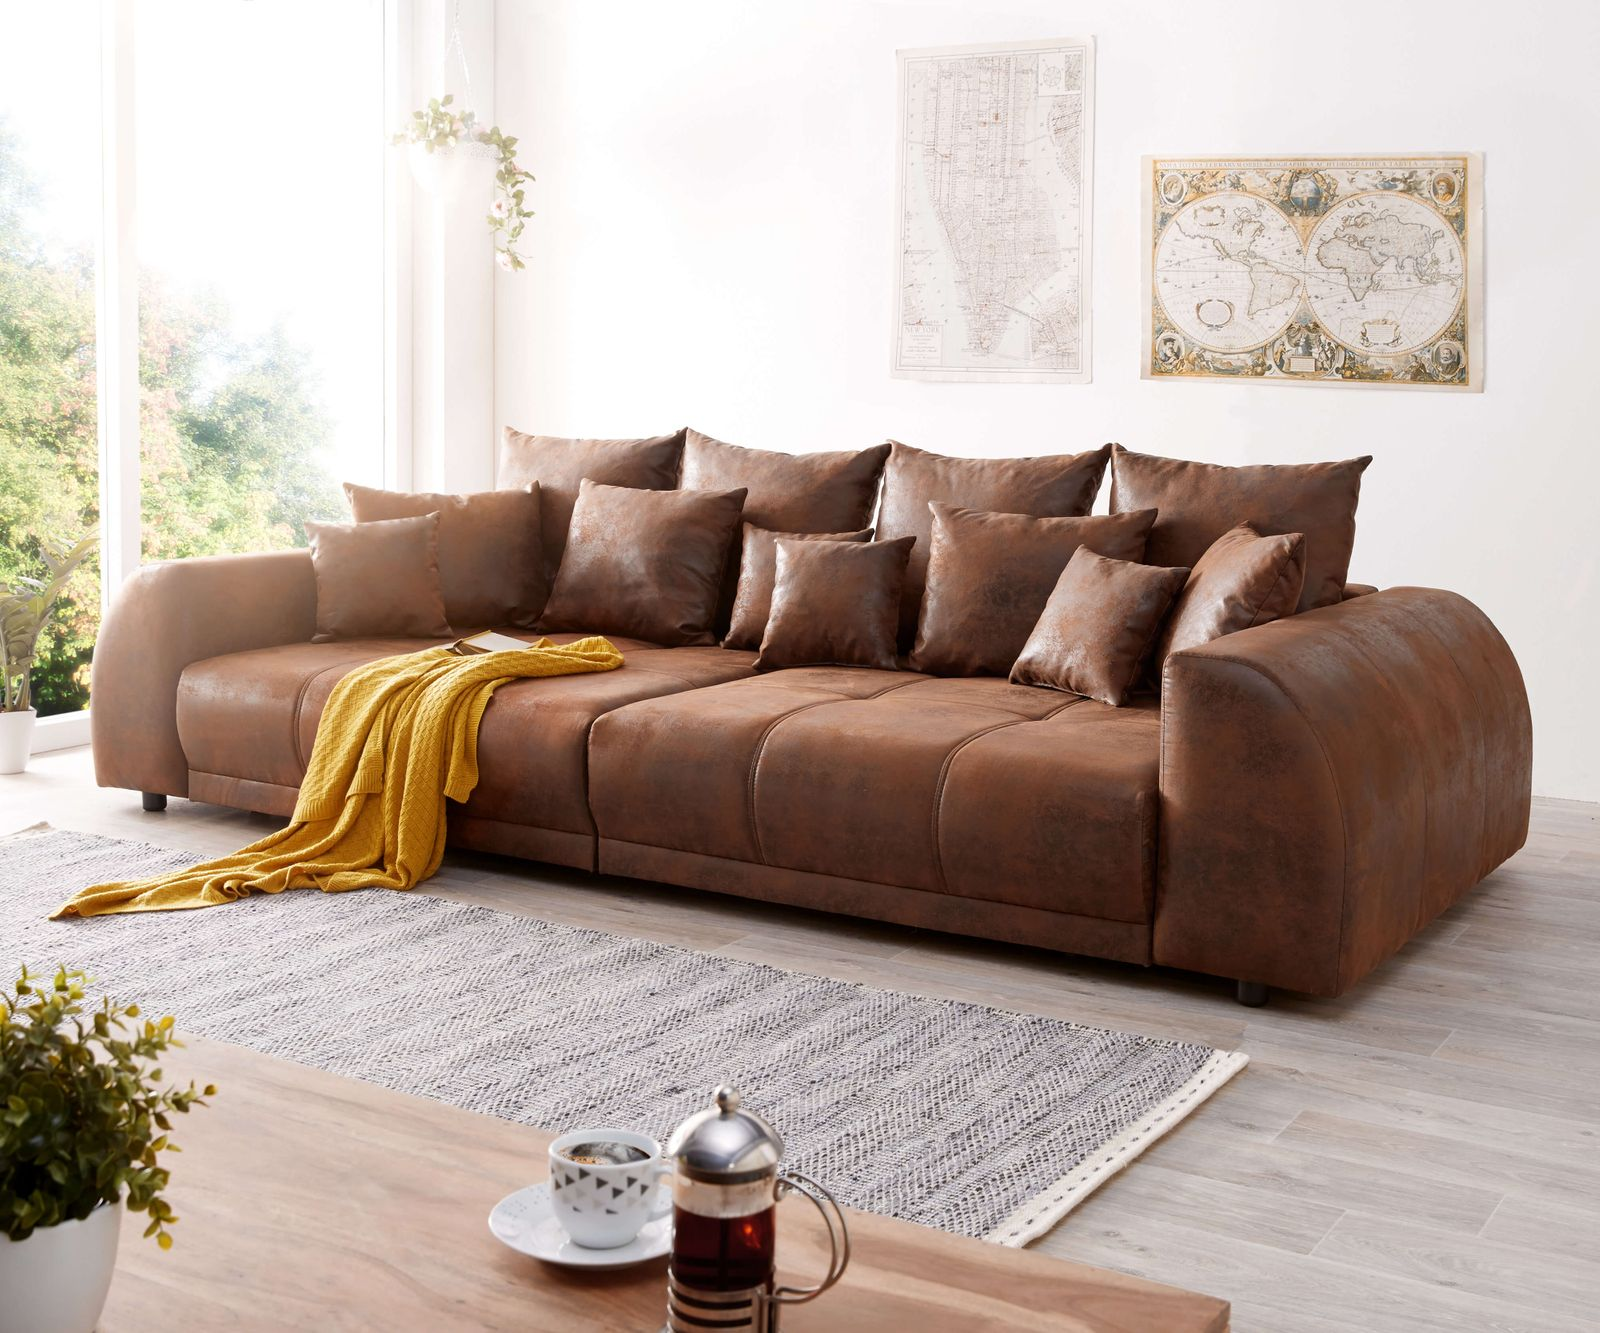 Relax Sofa Braun Big Sofa Baci Living Room